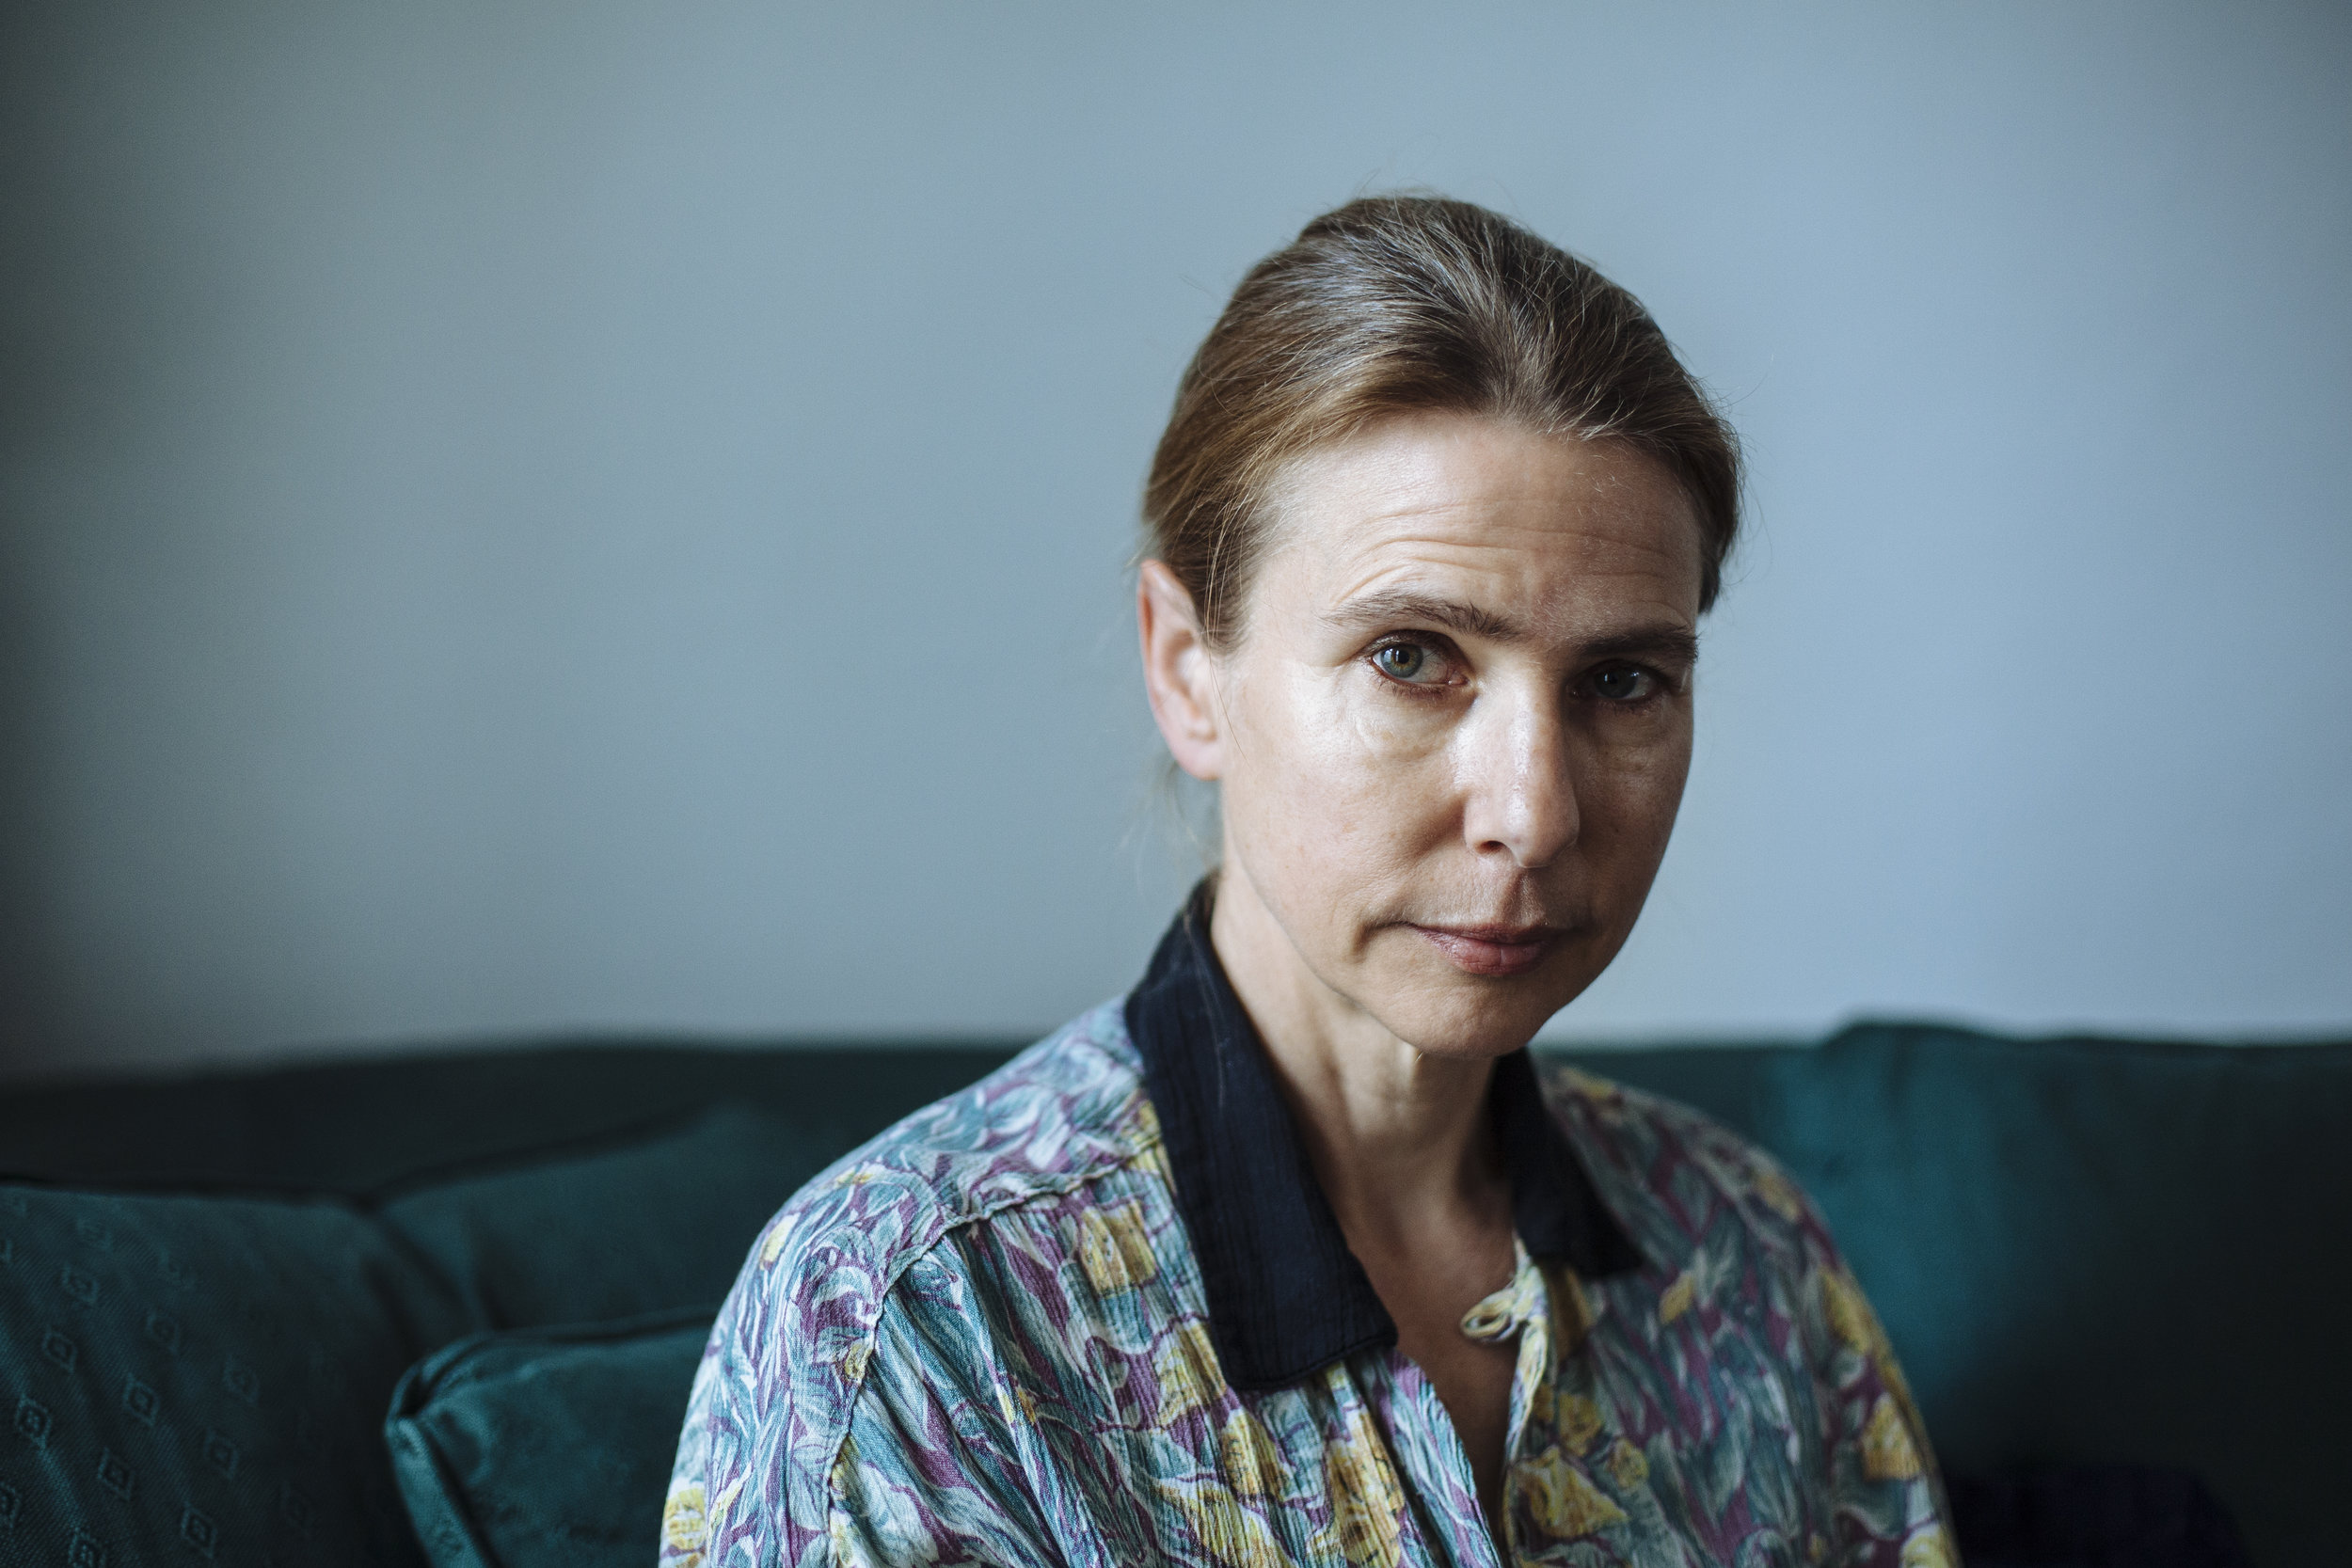 American author Lionel Shriver poses for a photograph at her home in southeast London, Tuesday, April 27, 2010. (AP Photo/David Azia)